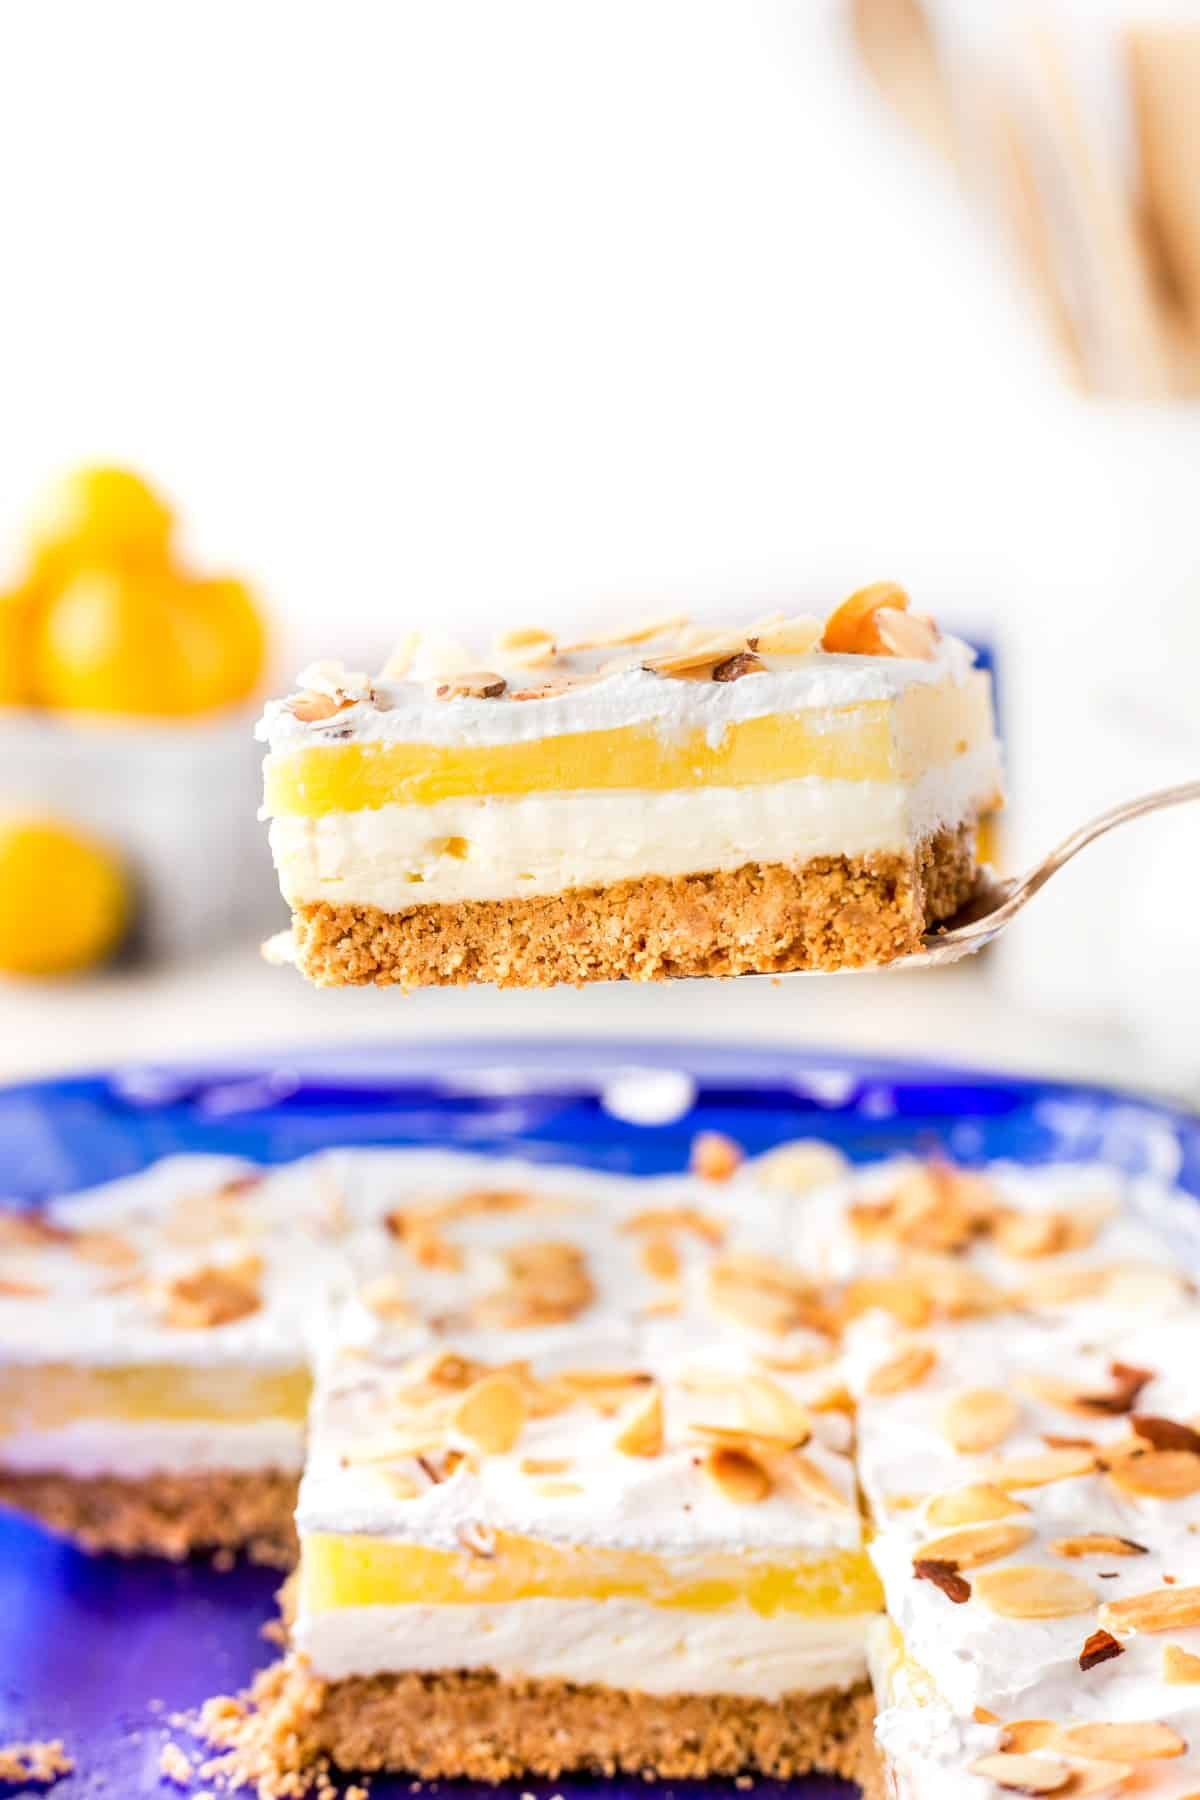 Show a slice of lemon lush dessert on a server.